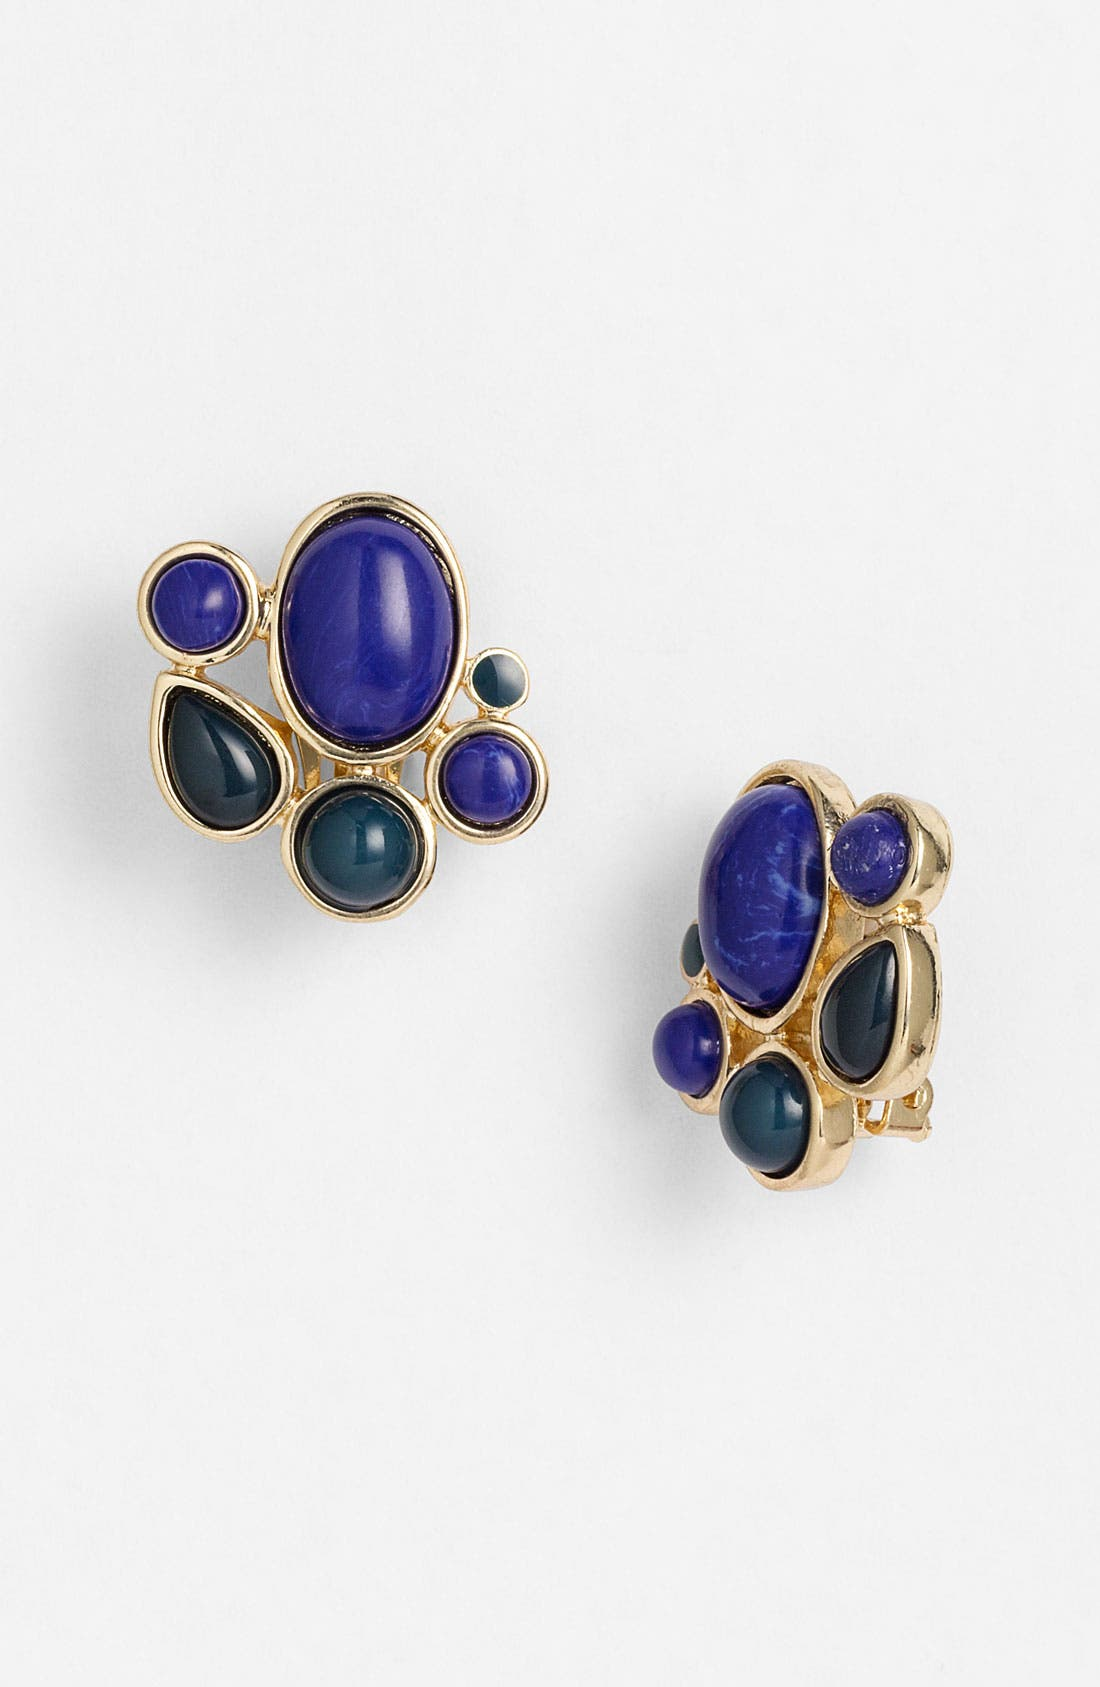 Main Image - Nordstrom 'Lapis of Luxury' Oval Clip Earrings